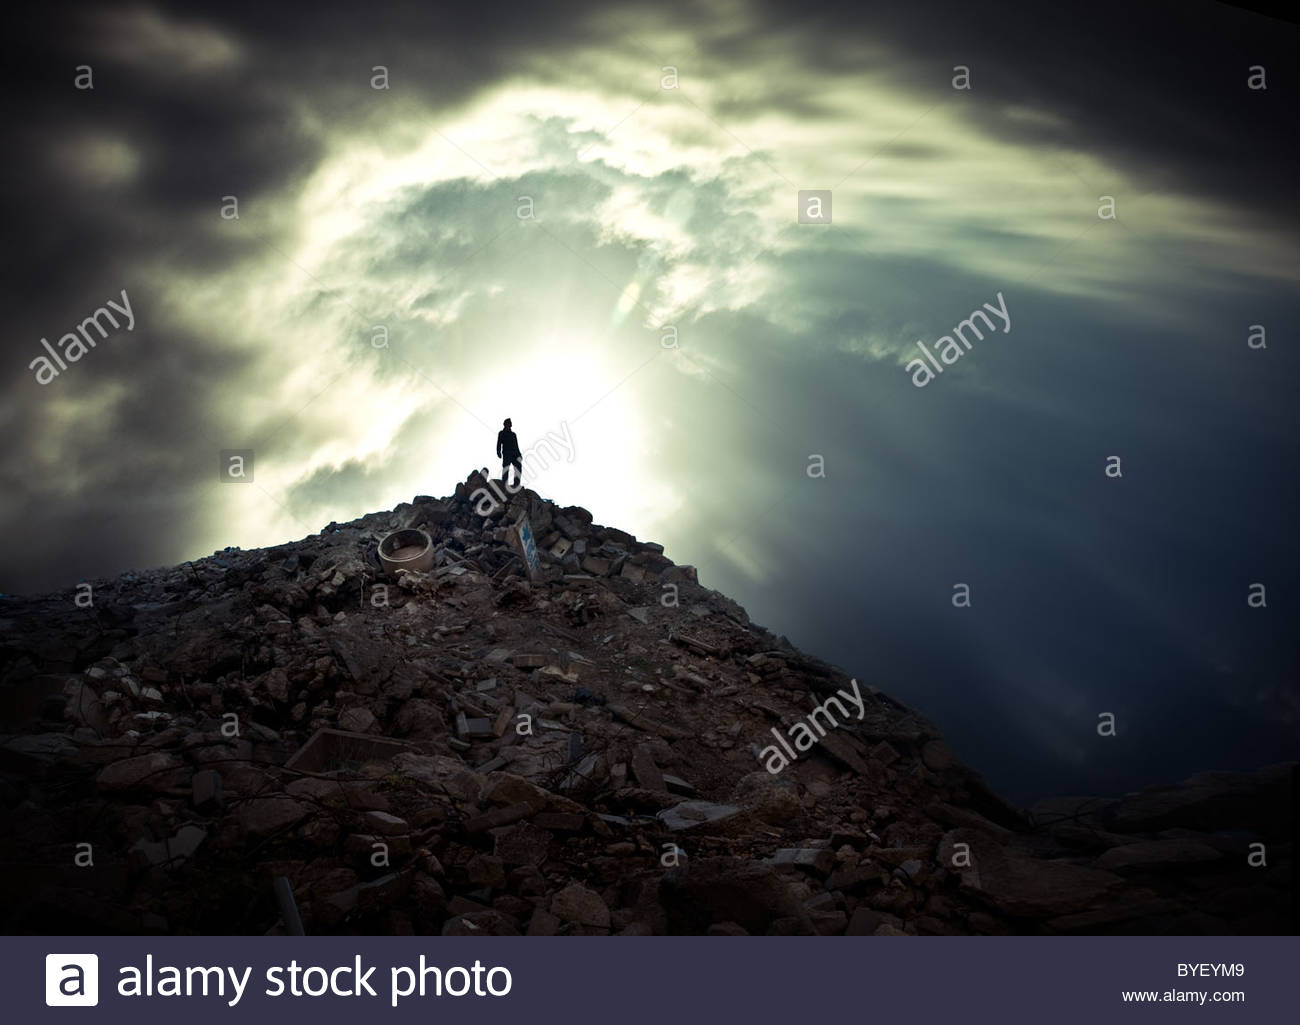 Lone male figure standing on the top of a mountain of waste - Stock Image